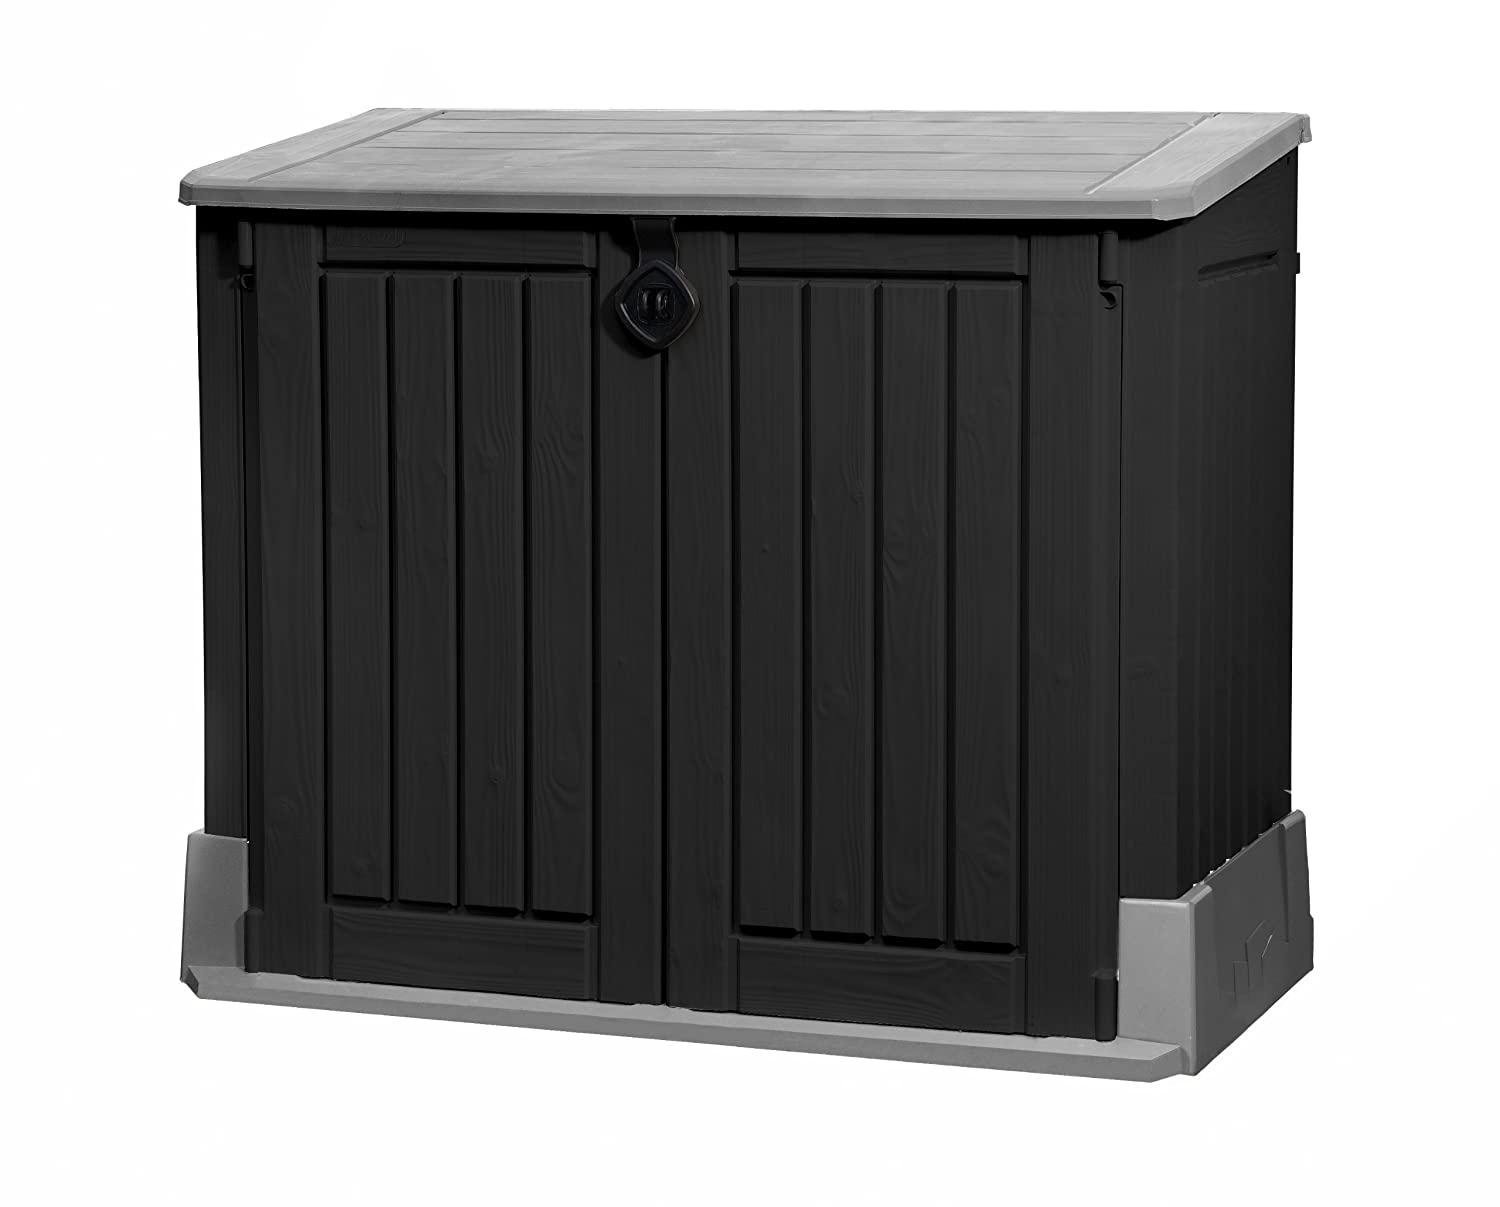 #Keter Store it Out Midi, Schwarz, 845L#